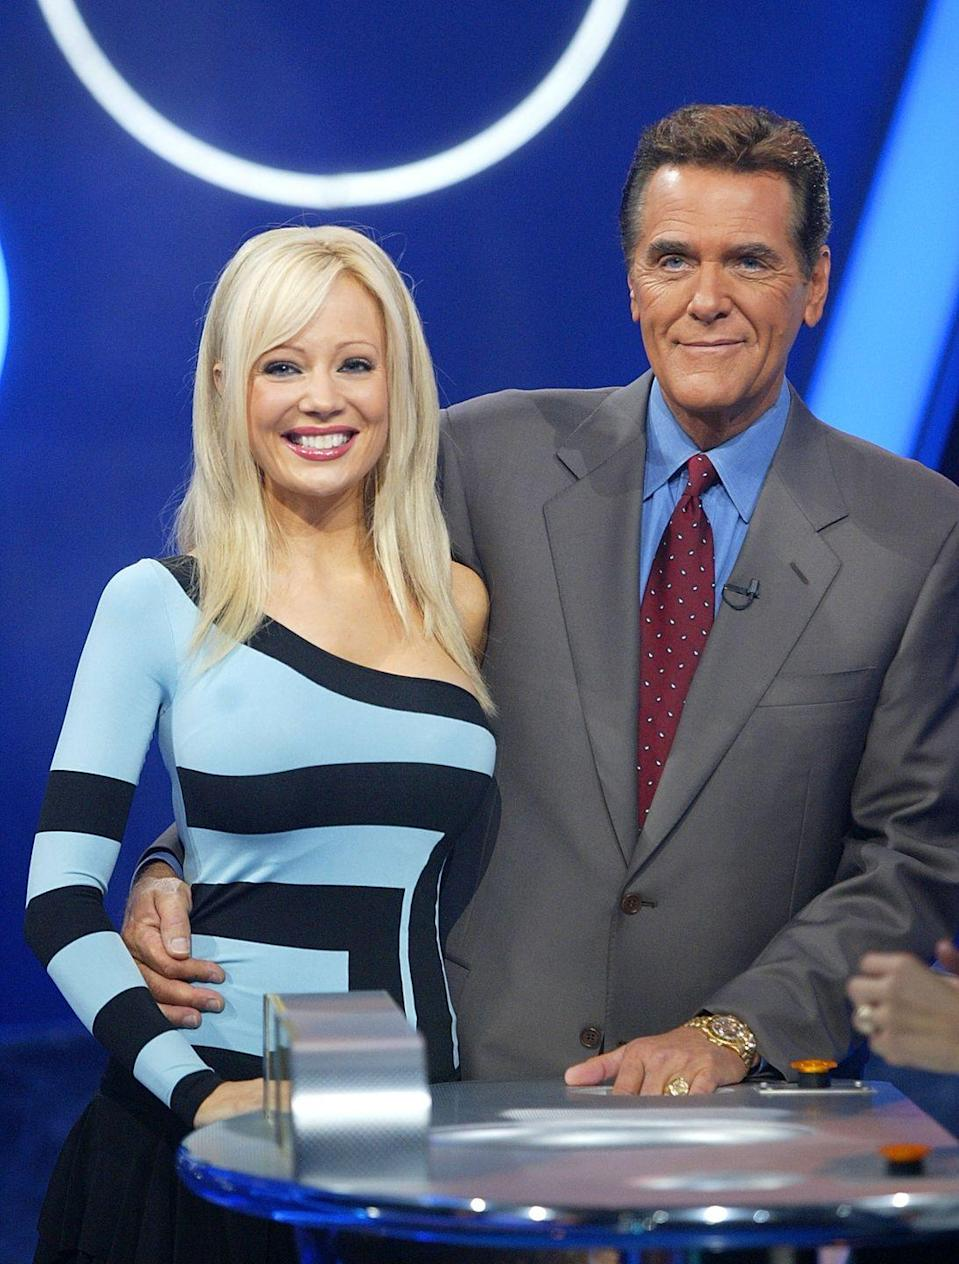 <p>Hosted by legendary game show host Chuck Woolery, <em>Lingo </em>aired on GSN off and on from 1987 to 2011. The game was a cross between bingo and word guessing, as contestants worked on creating different words to complete the <em>Lingo </em>puzzle. Payouts and prizes changed throughout the show's run, starting at $250 for winning a game when the show premiered.</p>